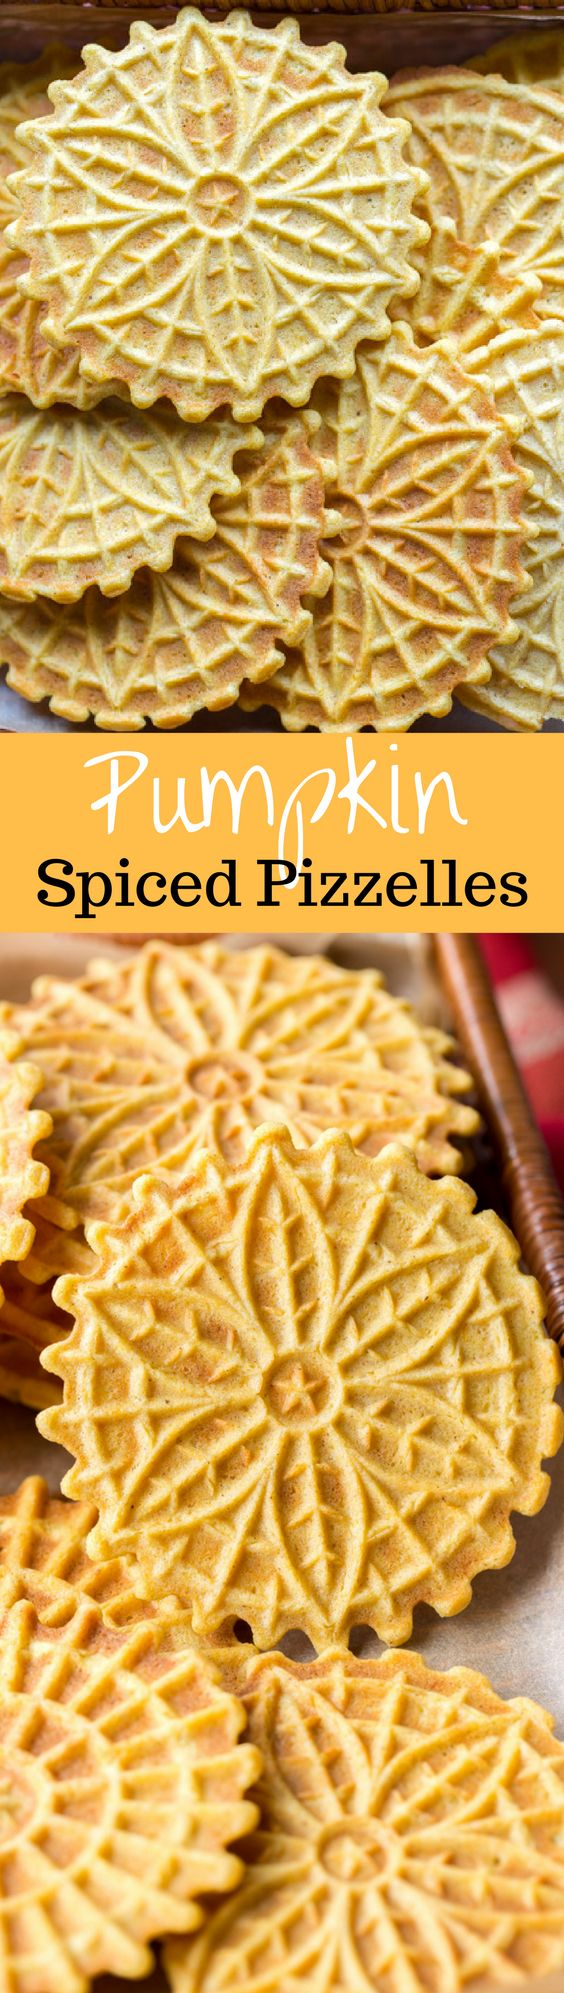 Pumpkin Spiced Pizzelles ~ pumpkin puree and pumpkin pie spice flavor this simple little easy-to-make cookie. Great served with ice cream or as an ice cream sandwich. Roll the hot cookie into a cannoli shape then fill with mousse or dip in white chocolate. www.savingdessert.com